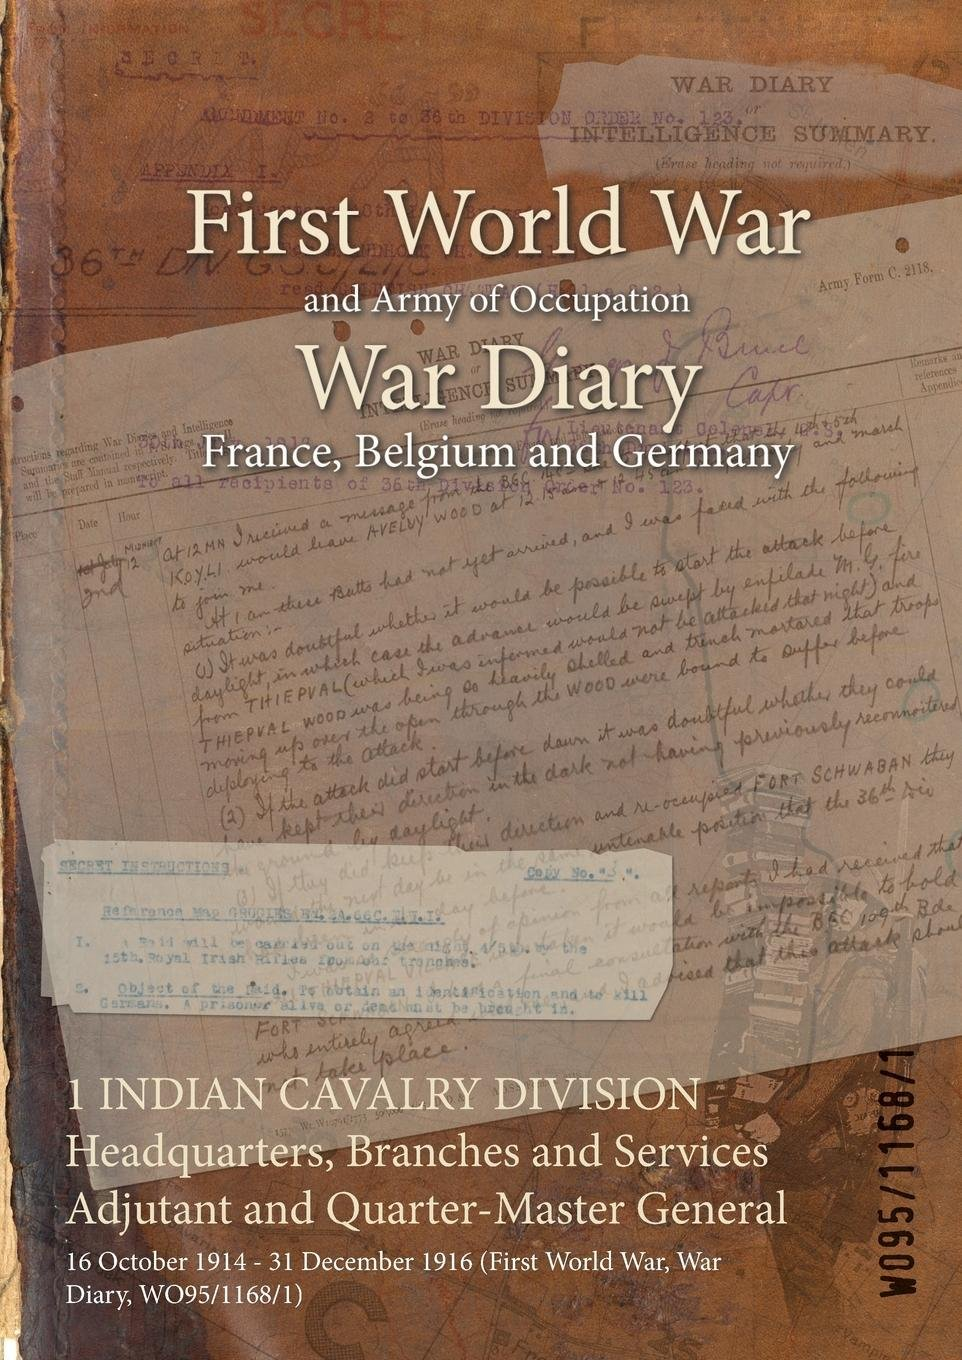 Download 1 Indian Cavalry Division Headquarters, Branches and Services Adjutant and Quarter-Master General: 16 October 1914 - 31 December 1916 (First World War, War Diary, Wo95/1168/1) pdf